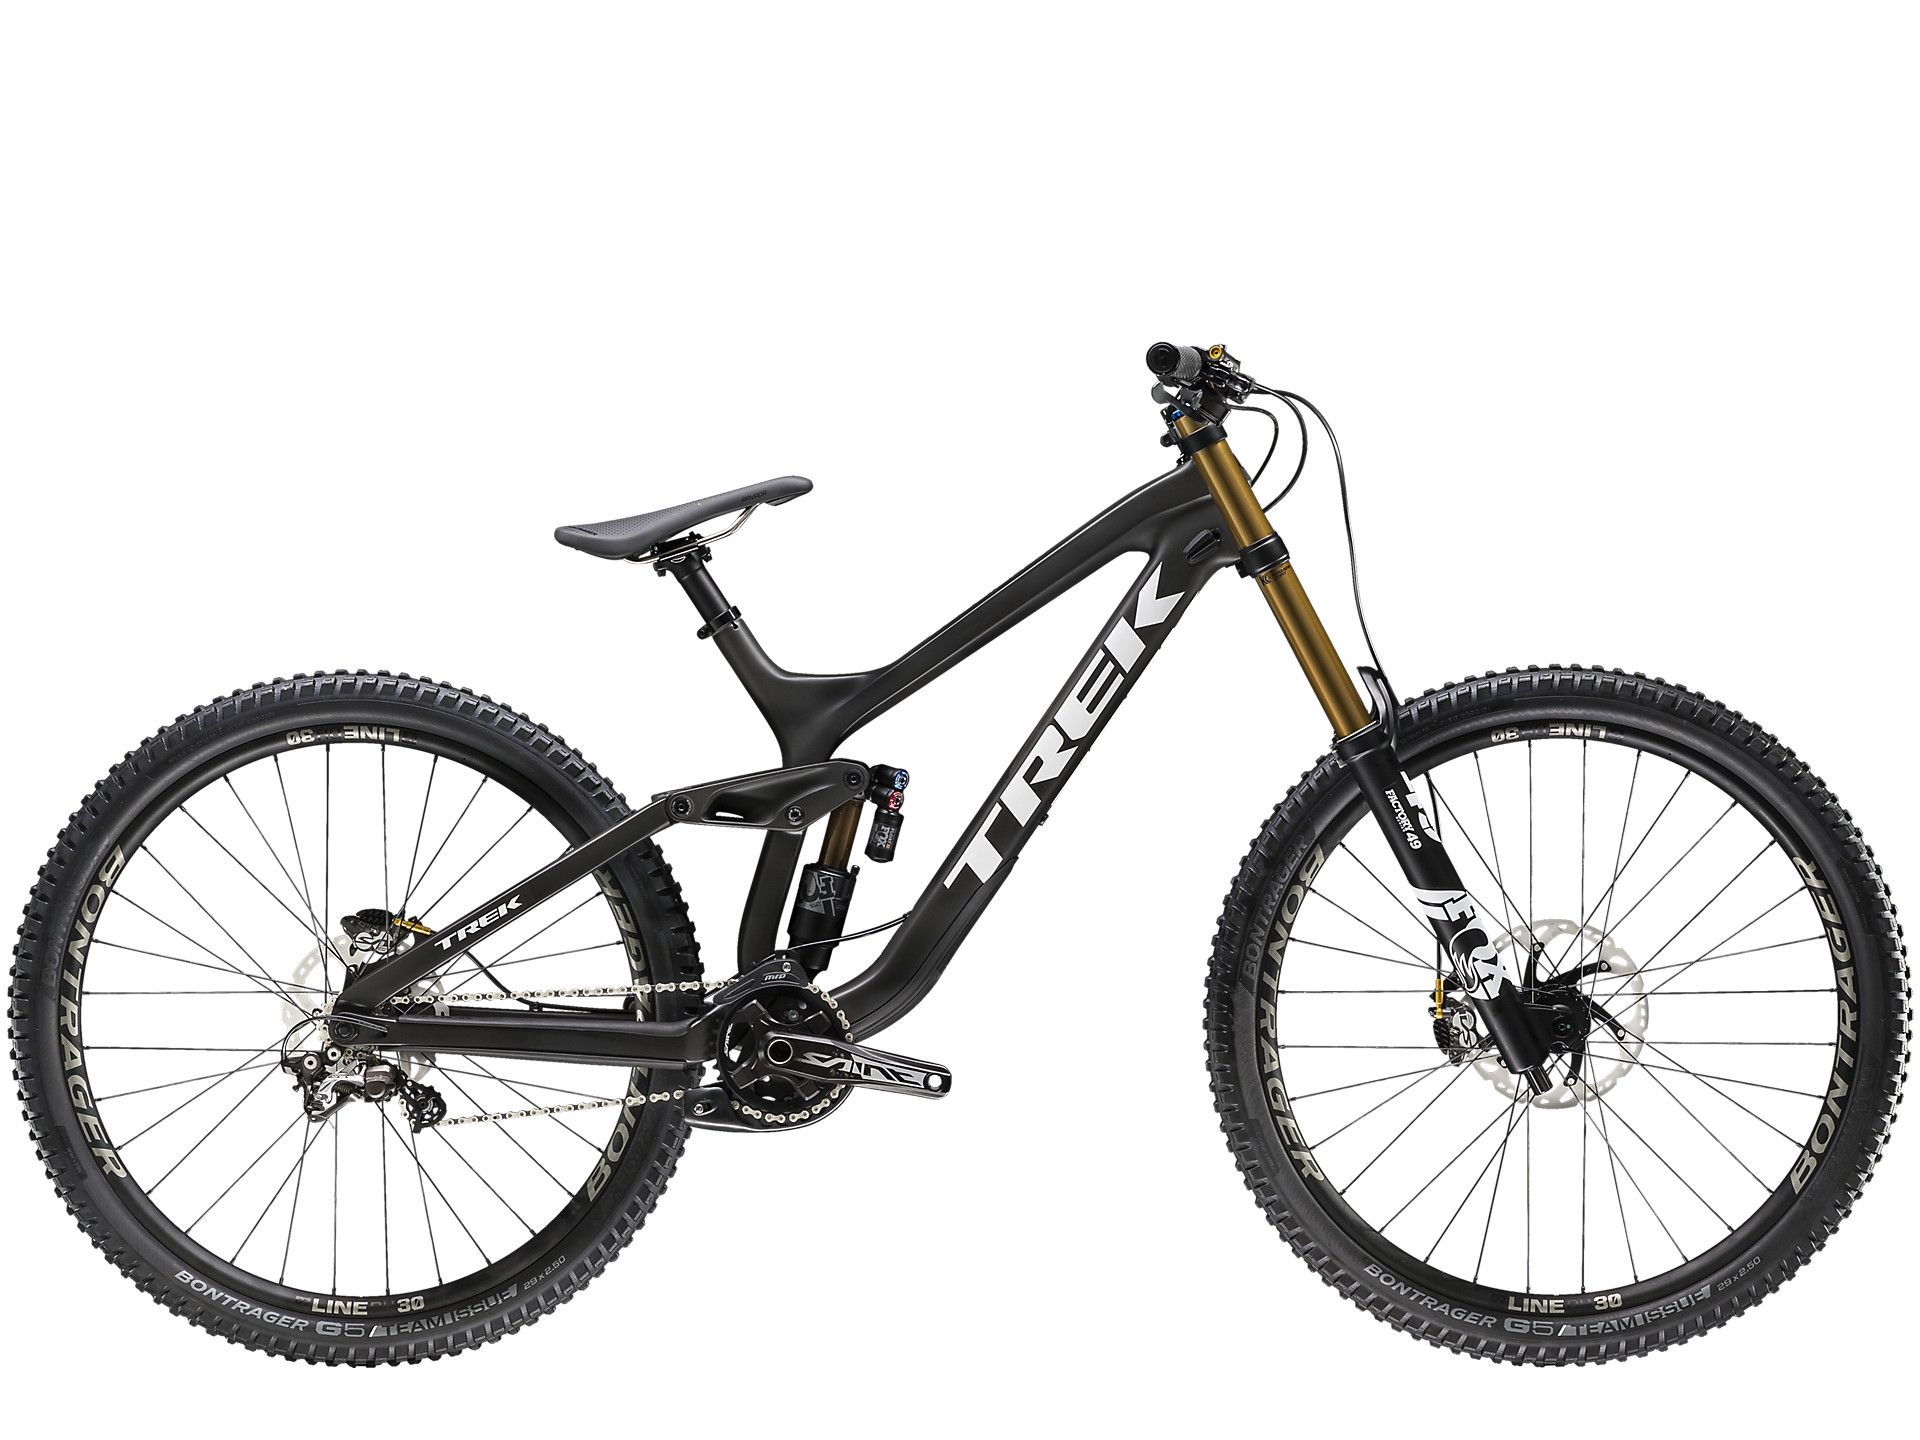 8c6f0732be6 Session 8 27.5 | Trek Bikes